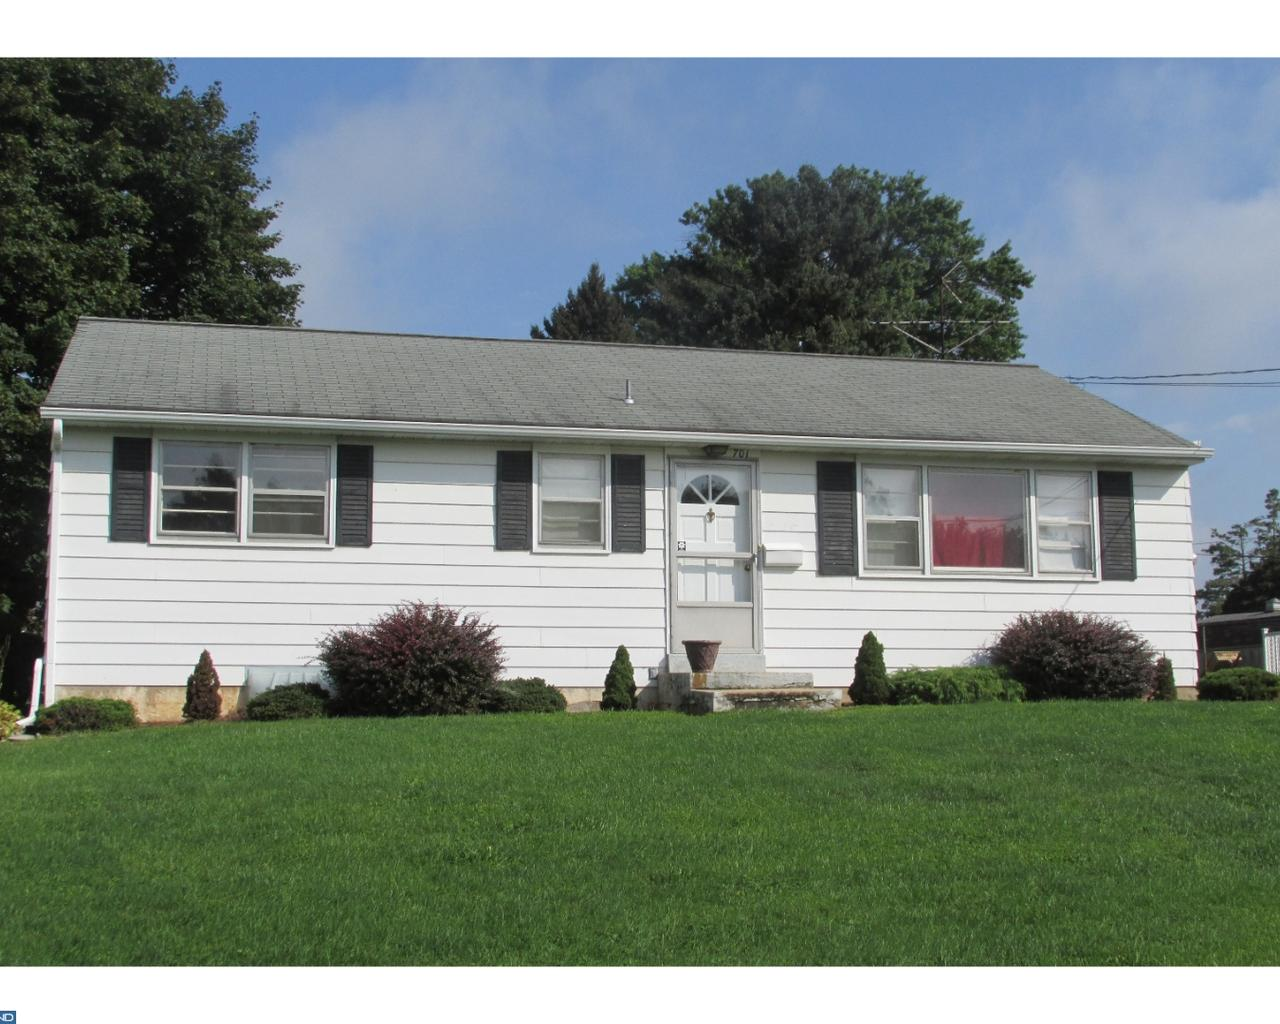 Property for sale at 701 5TH AVE, Parkesburg,  PA 19365